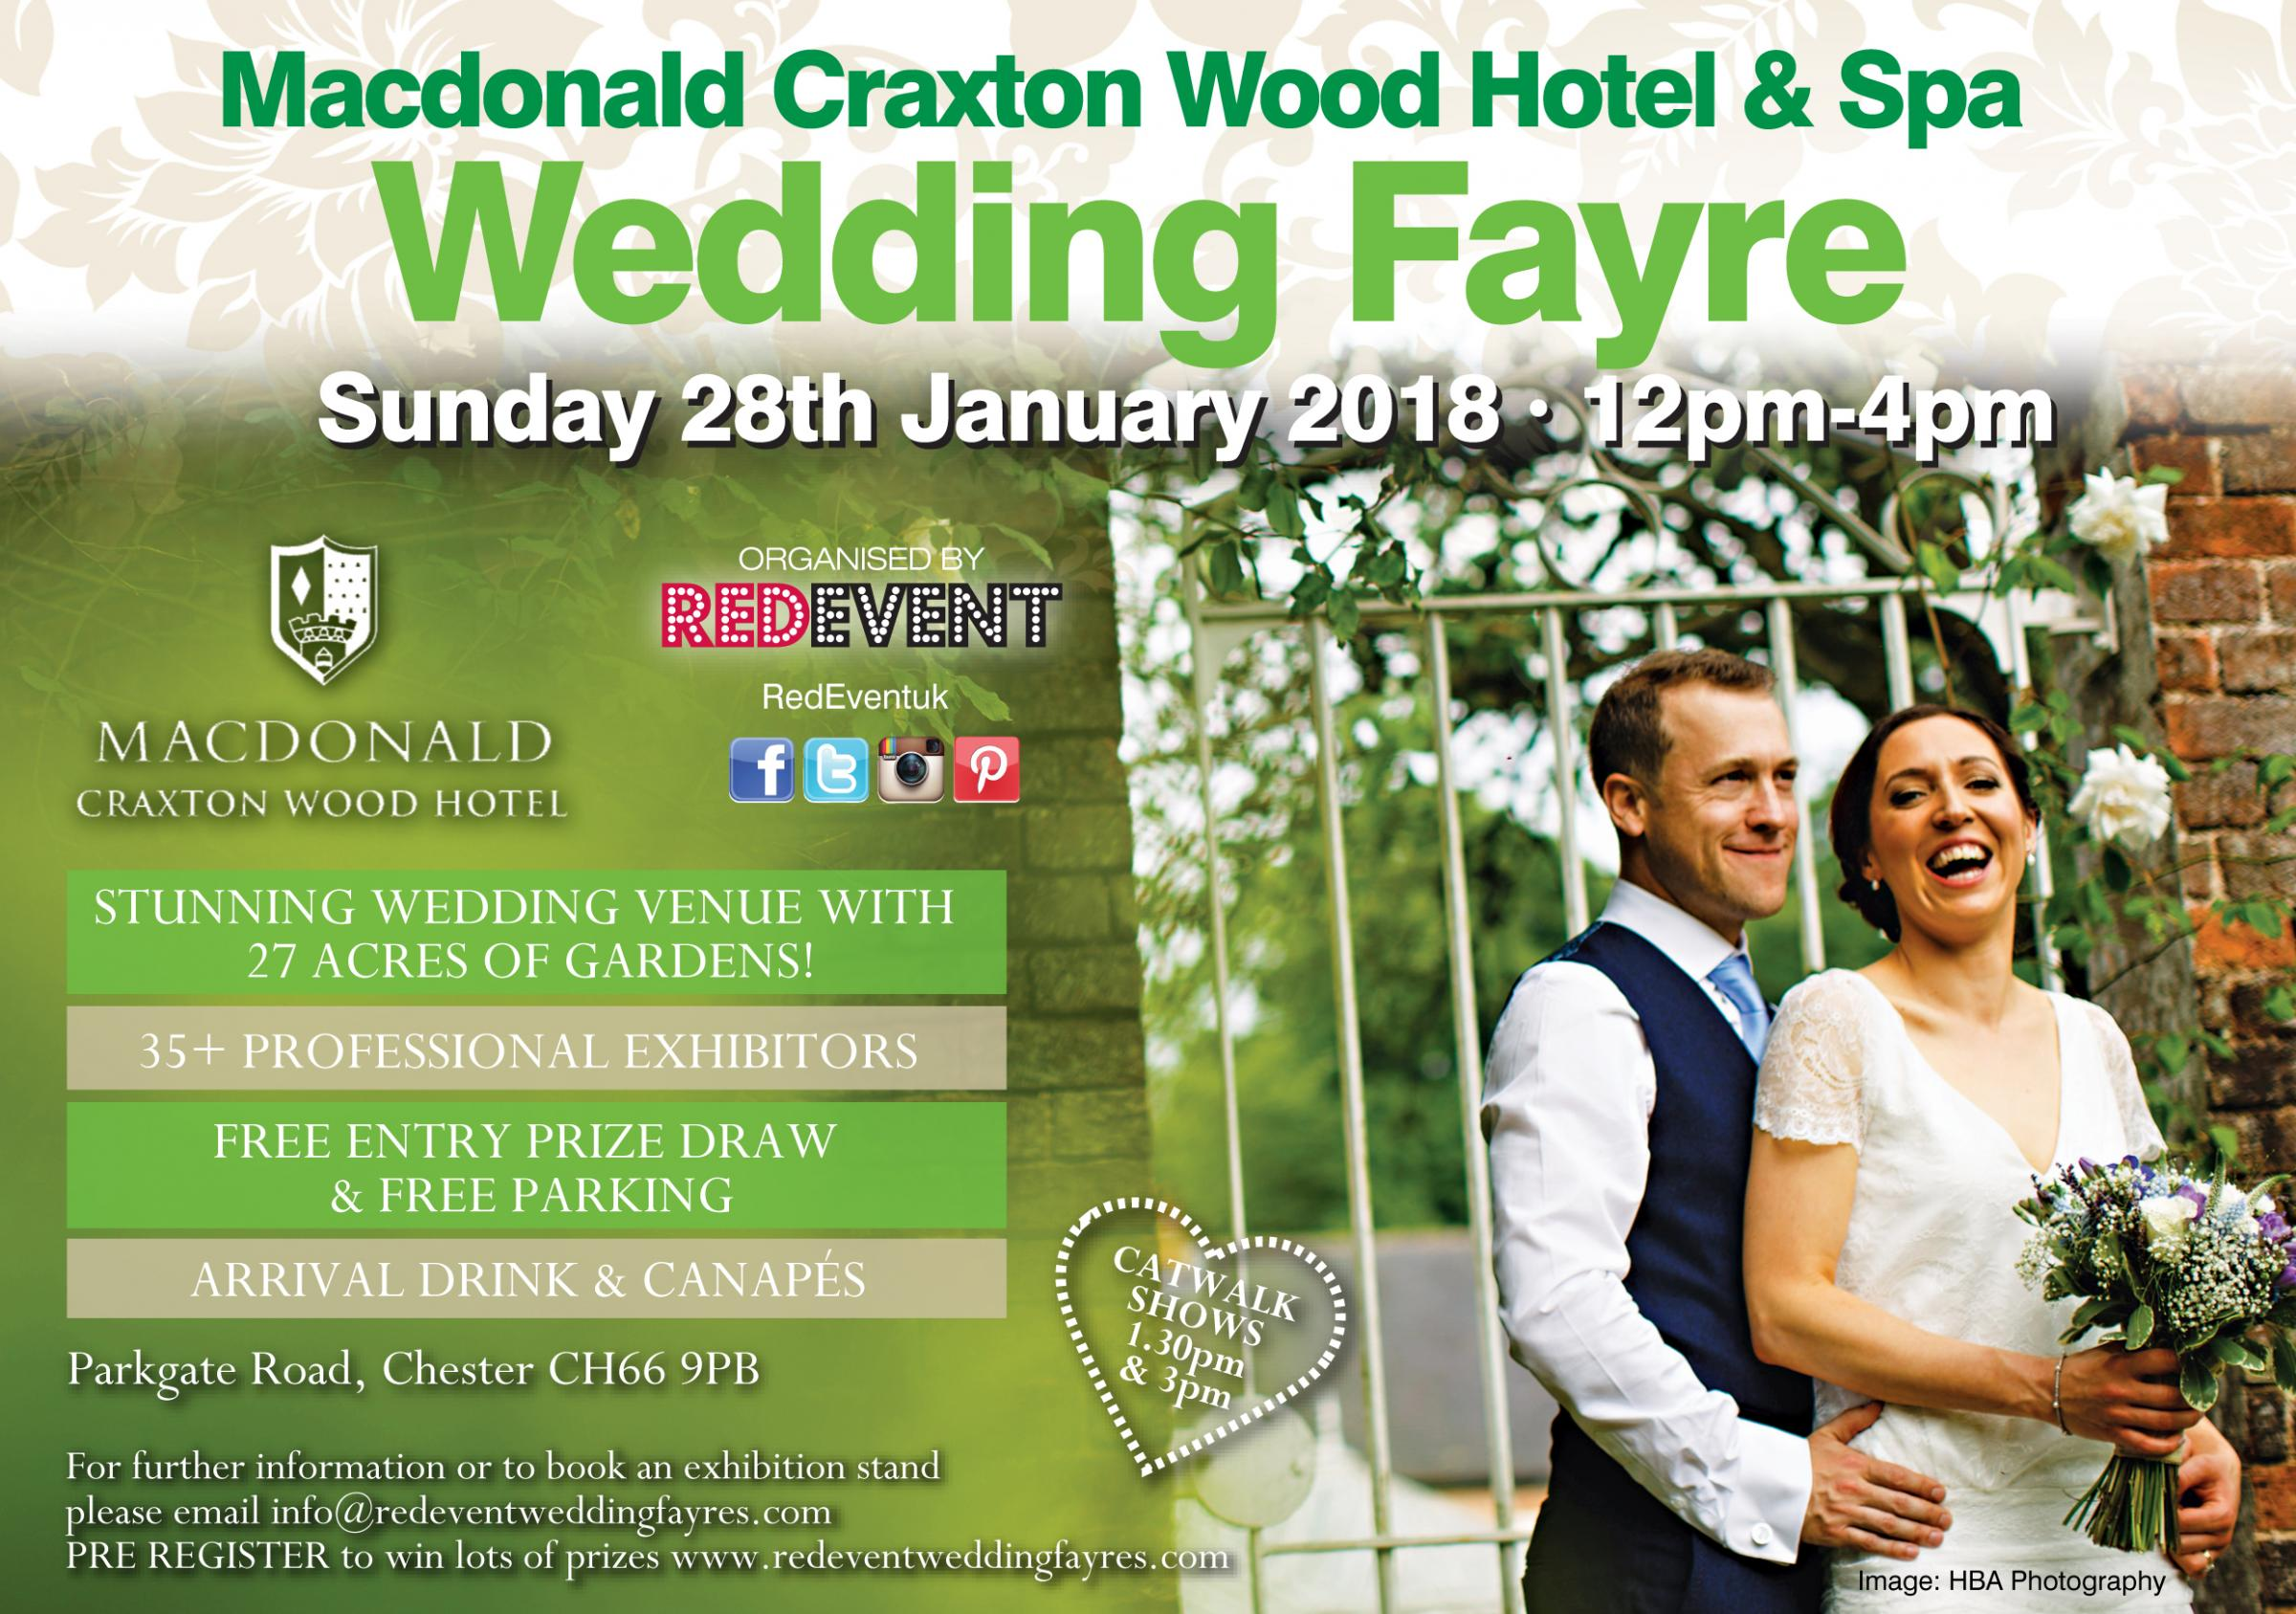 Wedding Fayre at Macdonald Craxton Wood